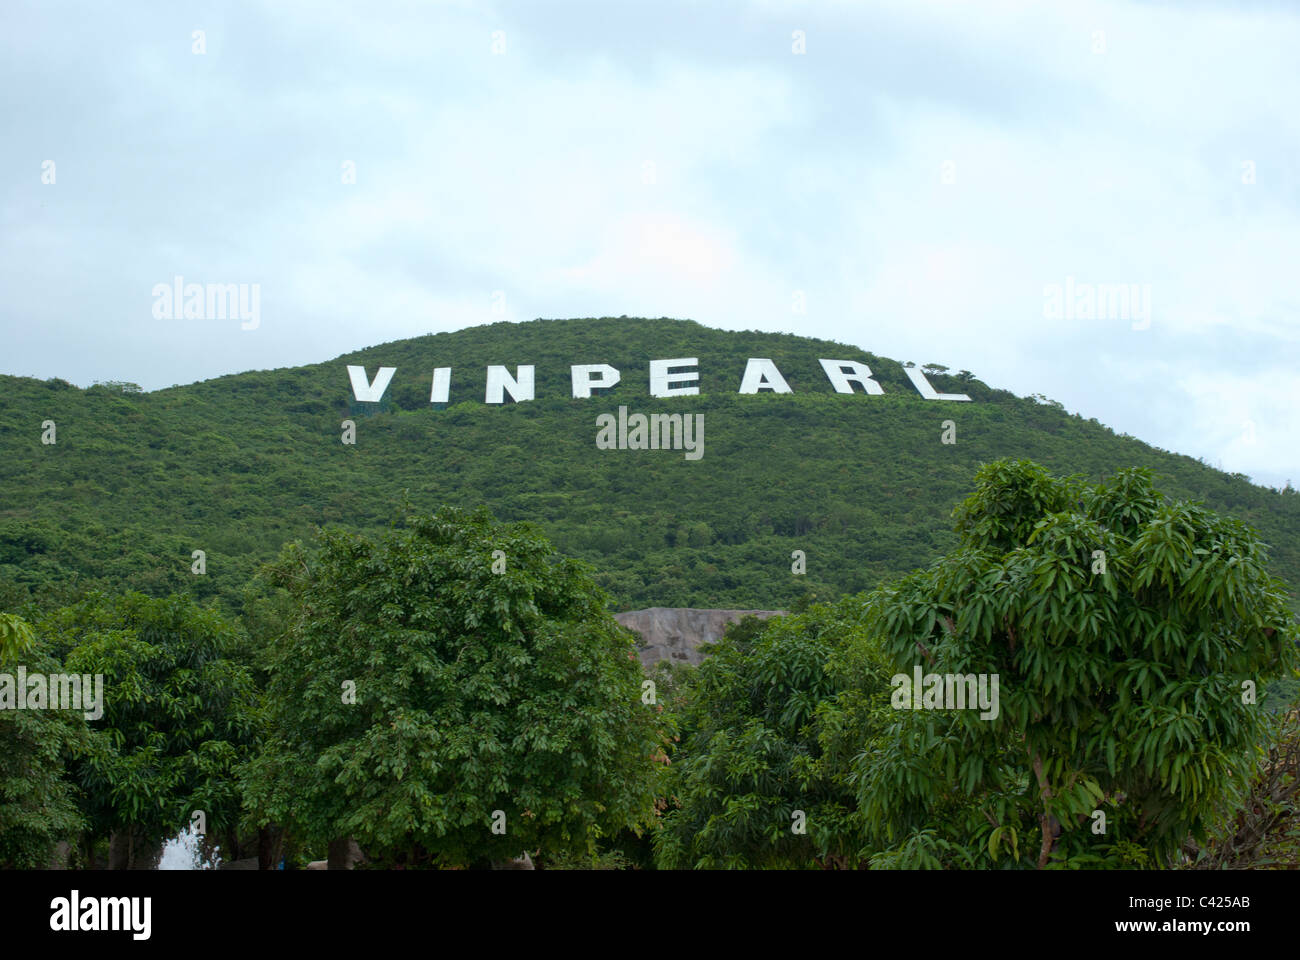 Vinpearl sign on a mountain similar to Hollywood sign in Nha Trang, Vietnam - Stock Image